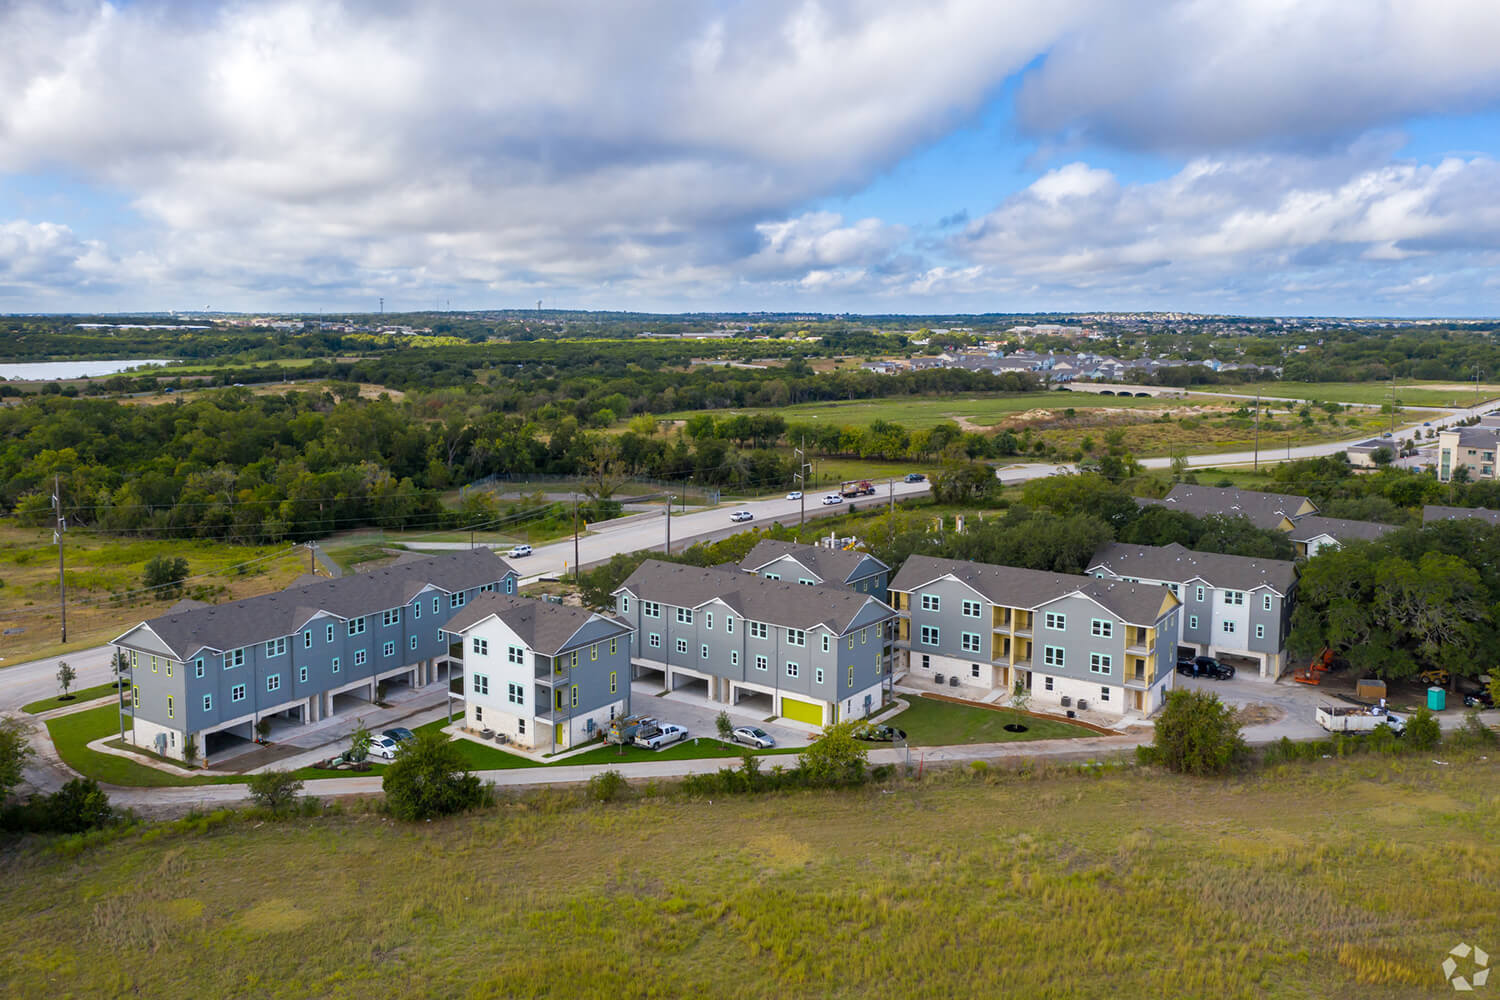 Trailside Oaks Townhomes Aerial Photo